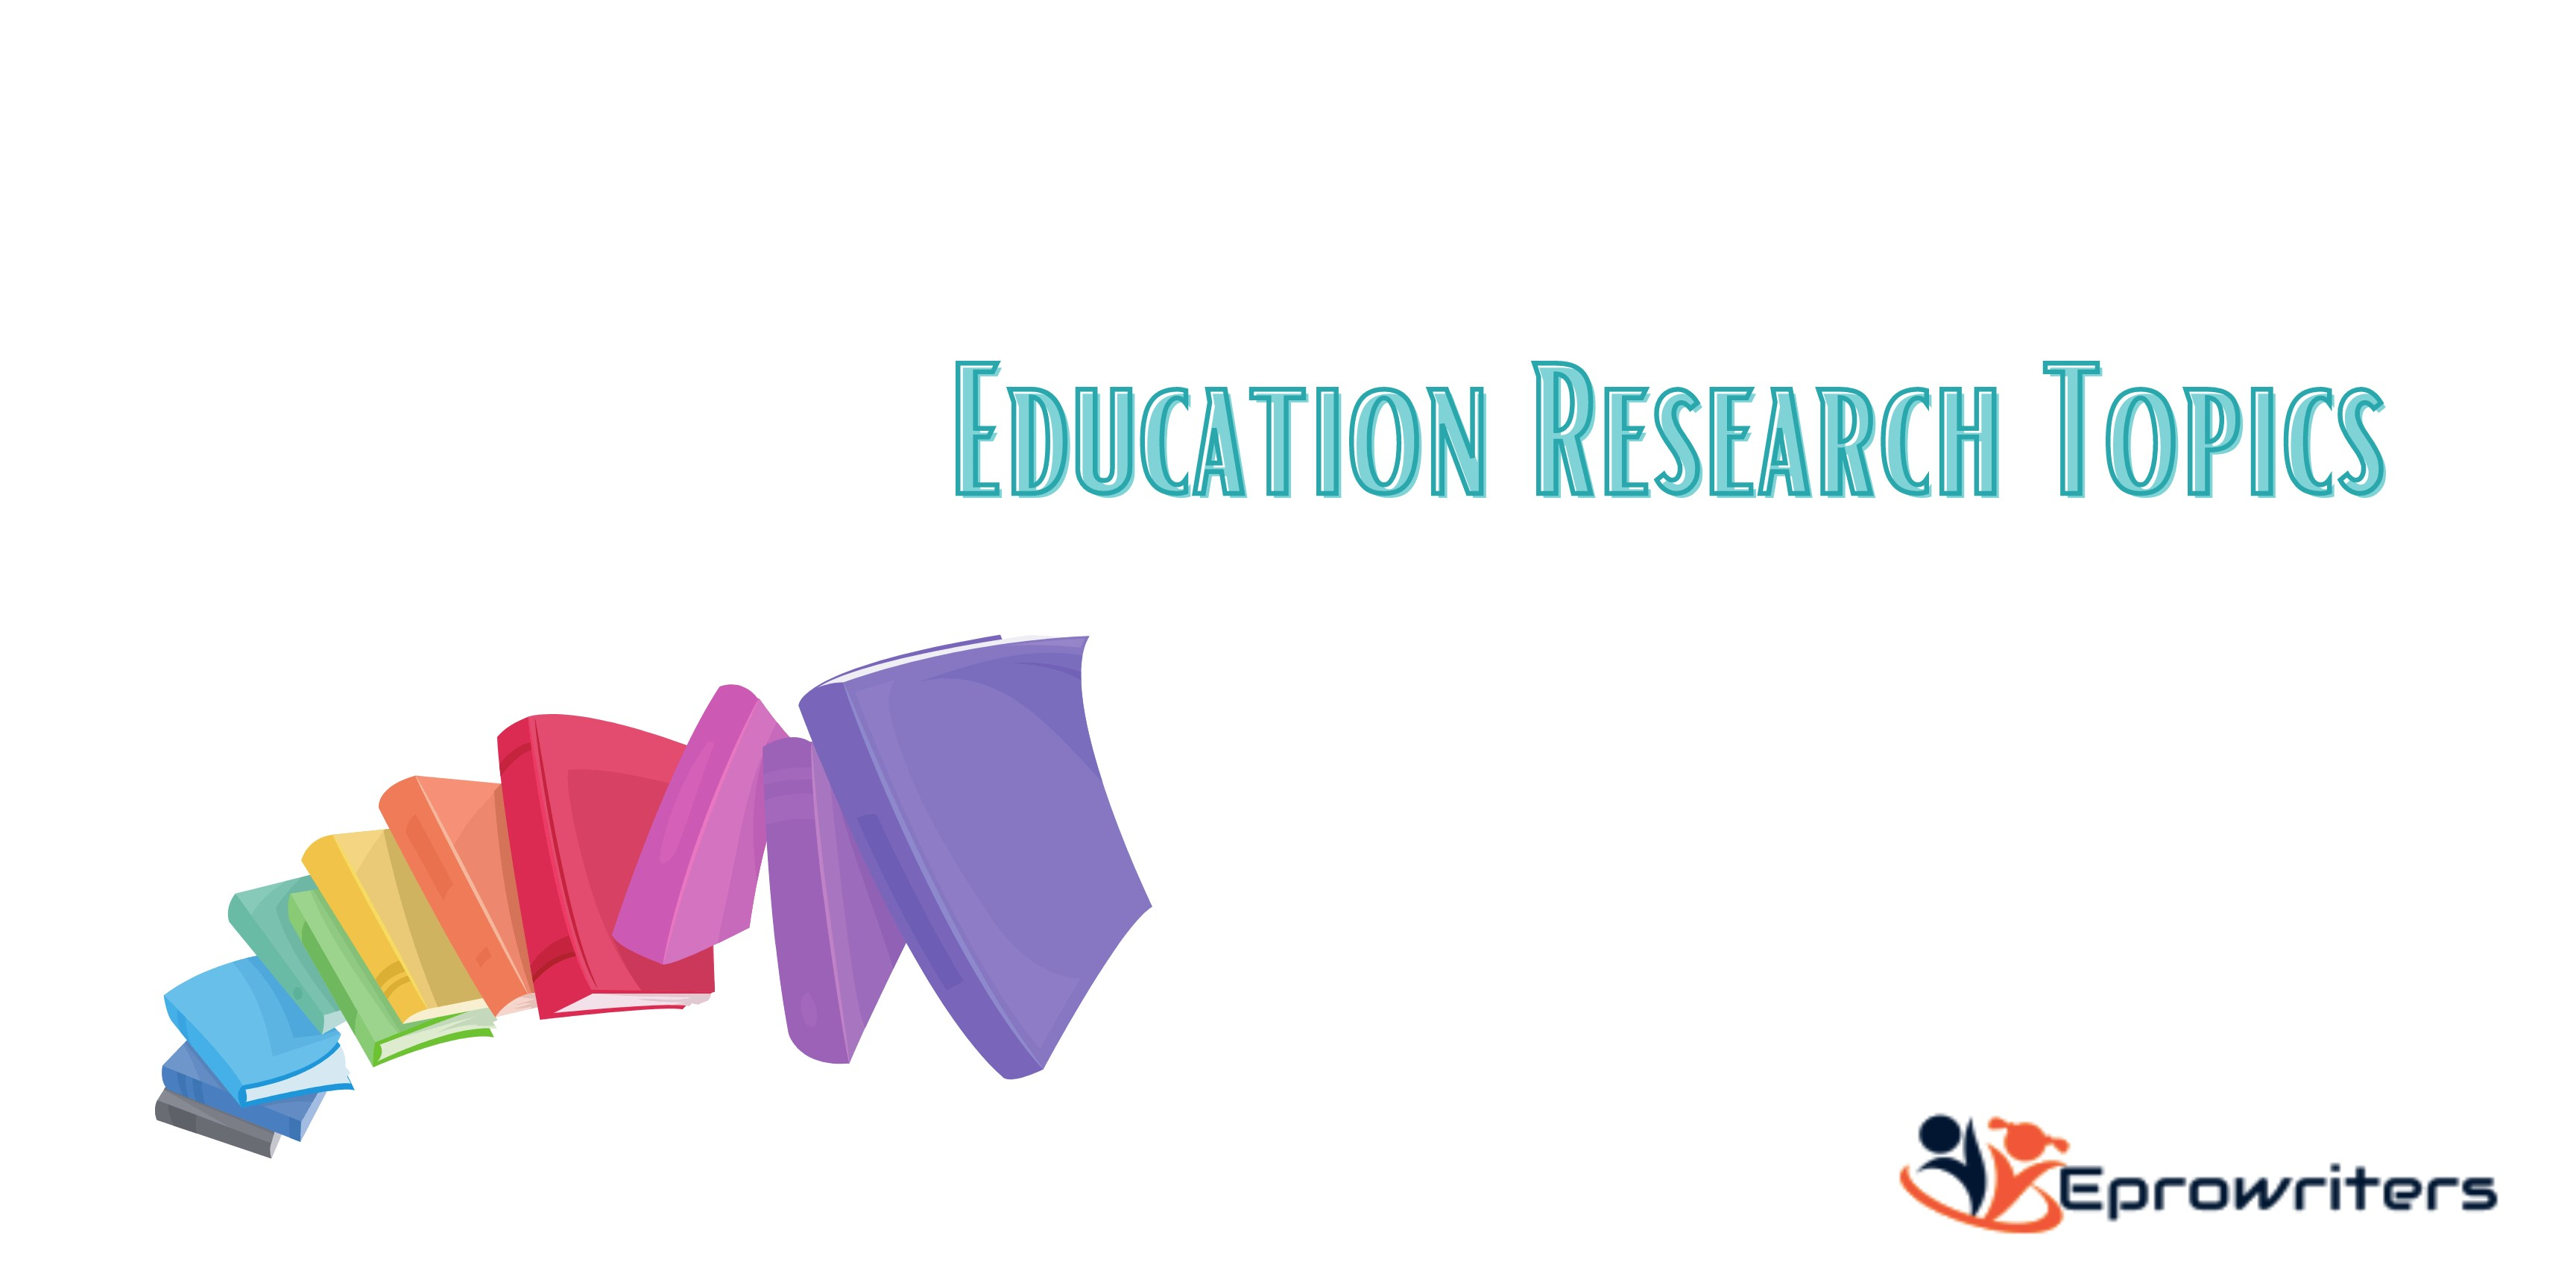 150+ Topics & Ideas for Education Research in 2021